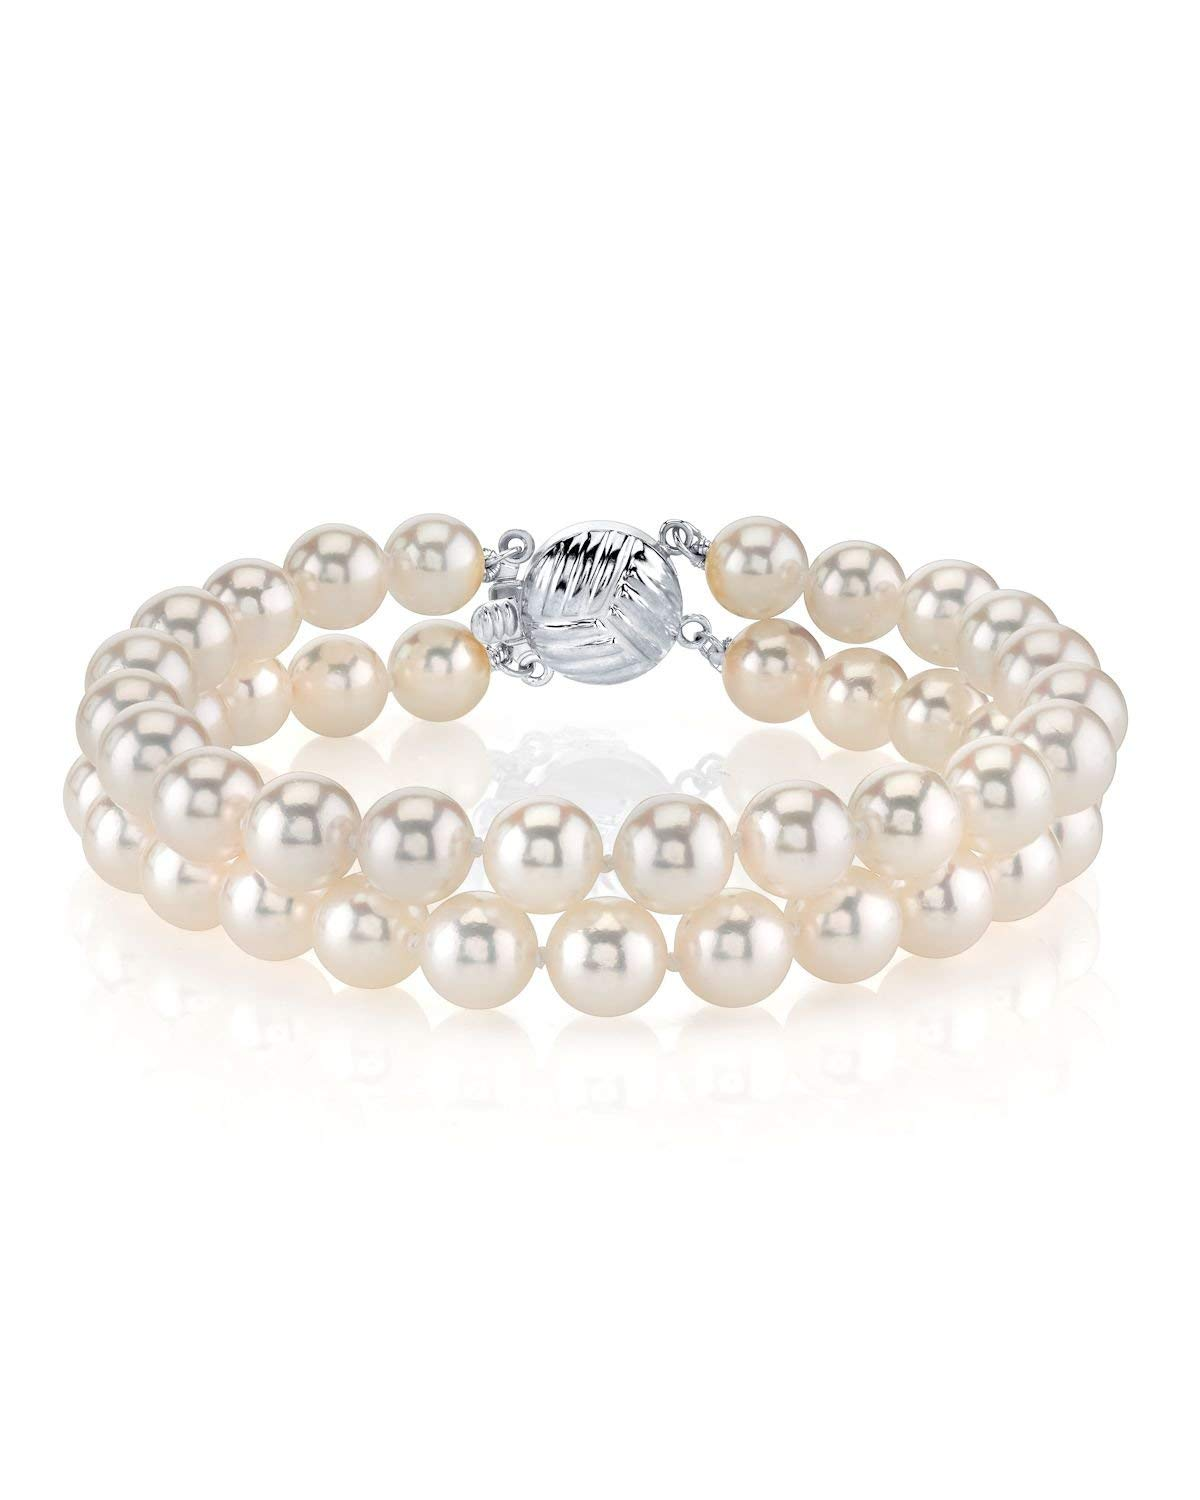 THE PEARL SOURCE 14K Gold 6.5-7mm Round White Double Japanese Akoya Saltwater Cultured Pearl Bracelet for Women